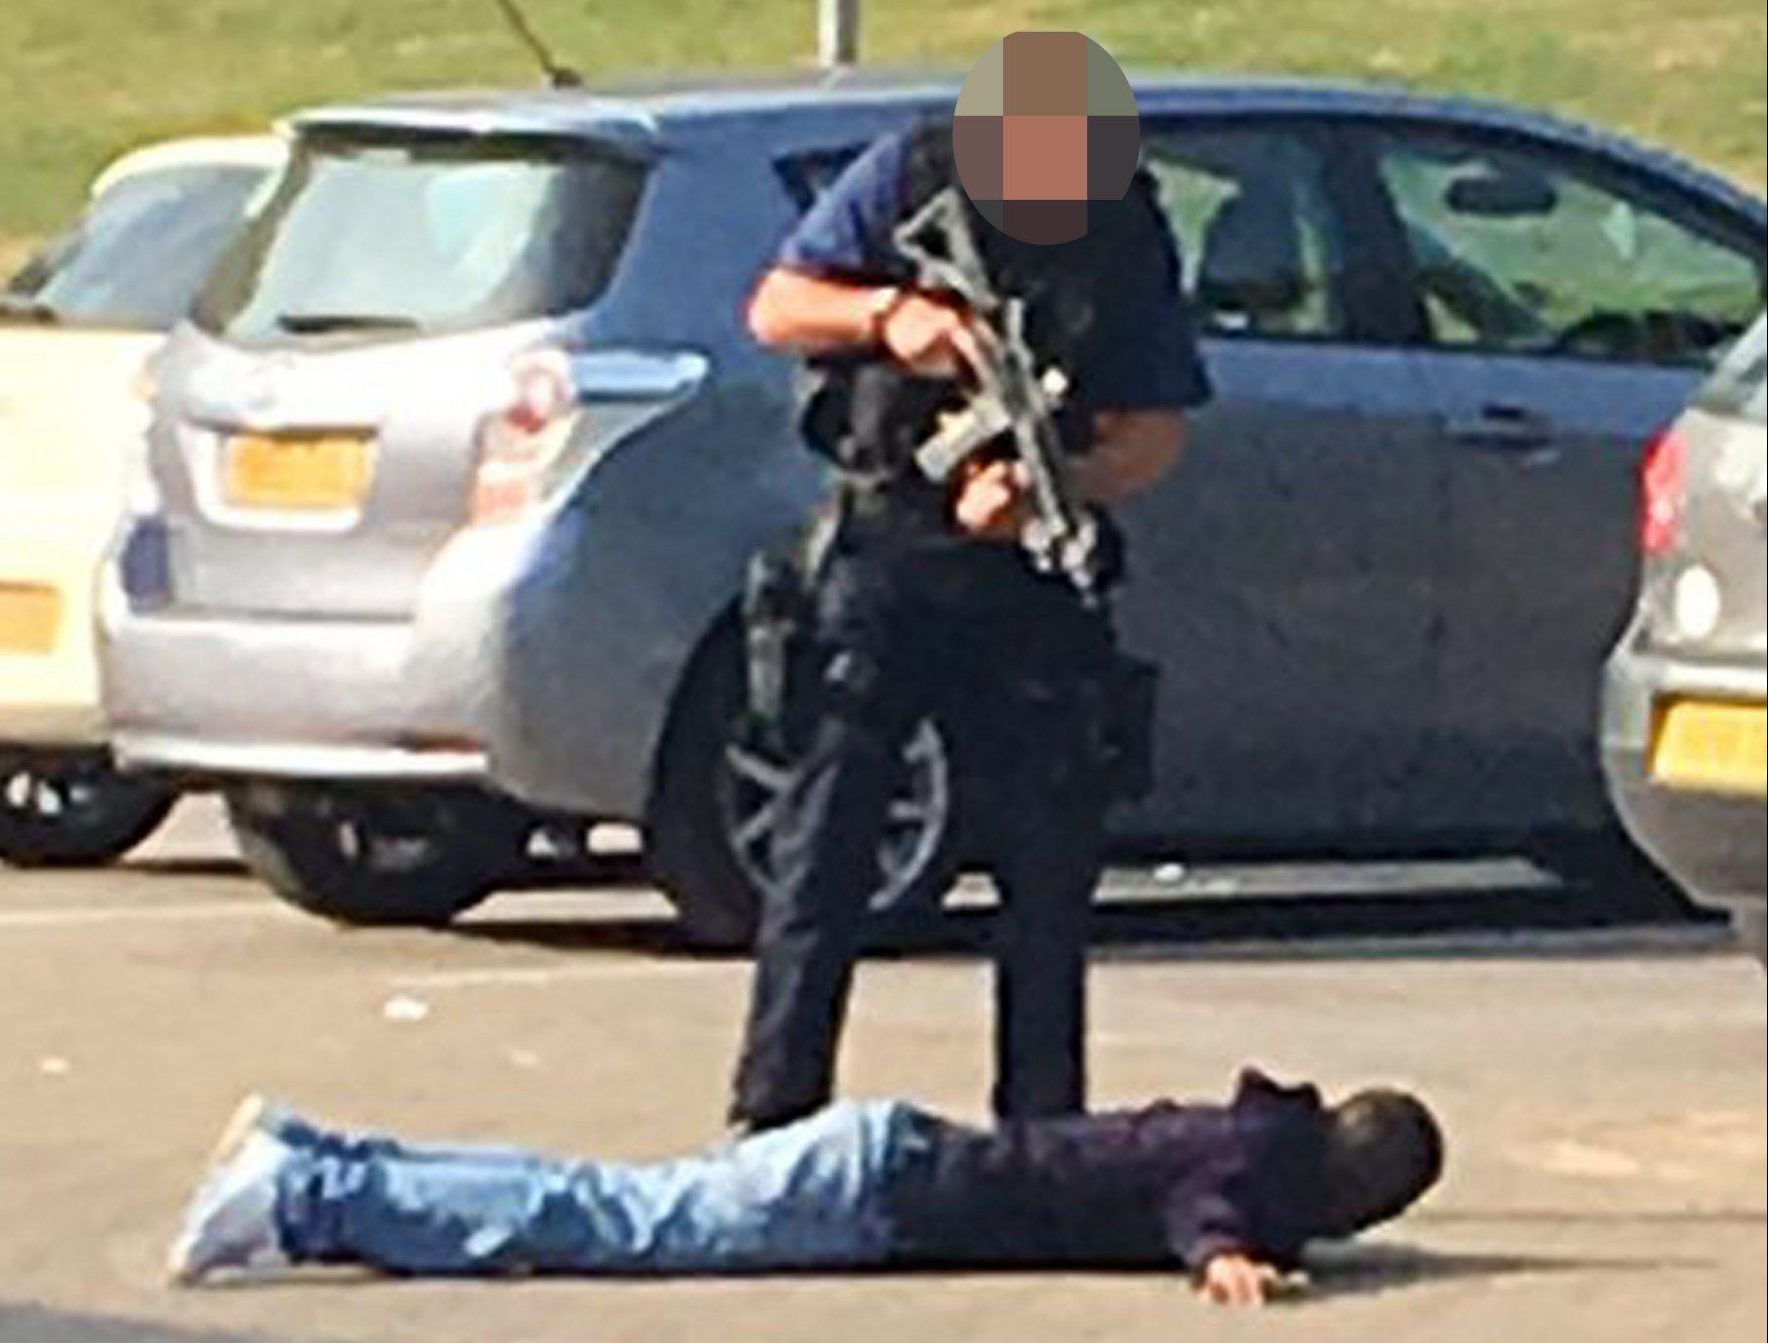 Photo courtesy of Can Ozkutan from his Twitter feed @CanOzkutan of an armed police officer detaining a man near Burdett Road in Mile End after scores of armed police were deployed to east London after men in a car were reported to be carrying a gun. PRESS ASSOCIATION Photo. Issue date: Tuesday August 16, 2016. See PA story POLICE MileEnd. Photo credit should read: Can Ozkutan/PA WirenNOTE TO EDITORS: This handout photo may only be used in for editorial reporting purposes for the contemporaneous illustration of events, things or the people in the image or facts mentioned in the caption. Reuse of the picture may require further permission from the copyright holder.